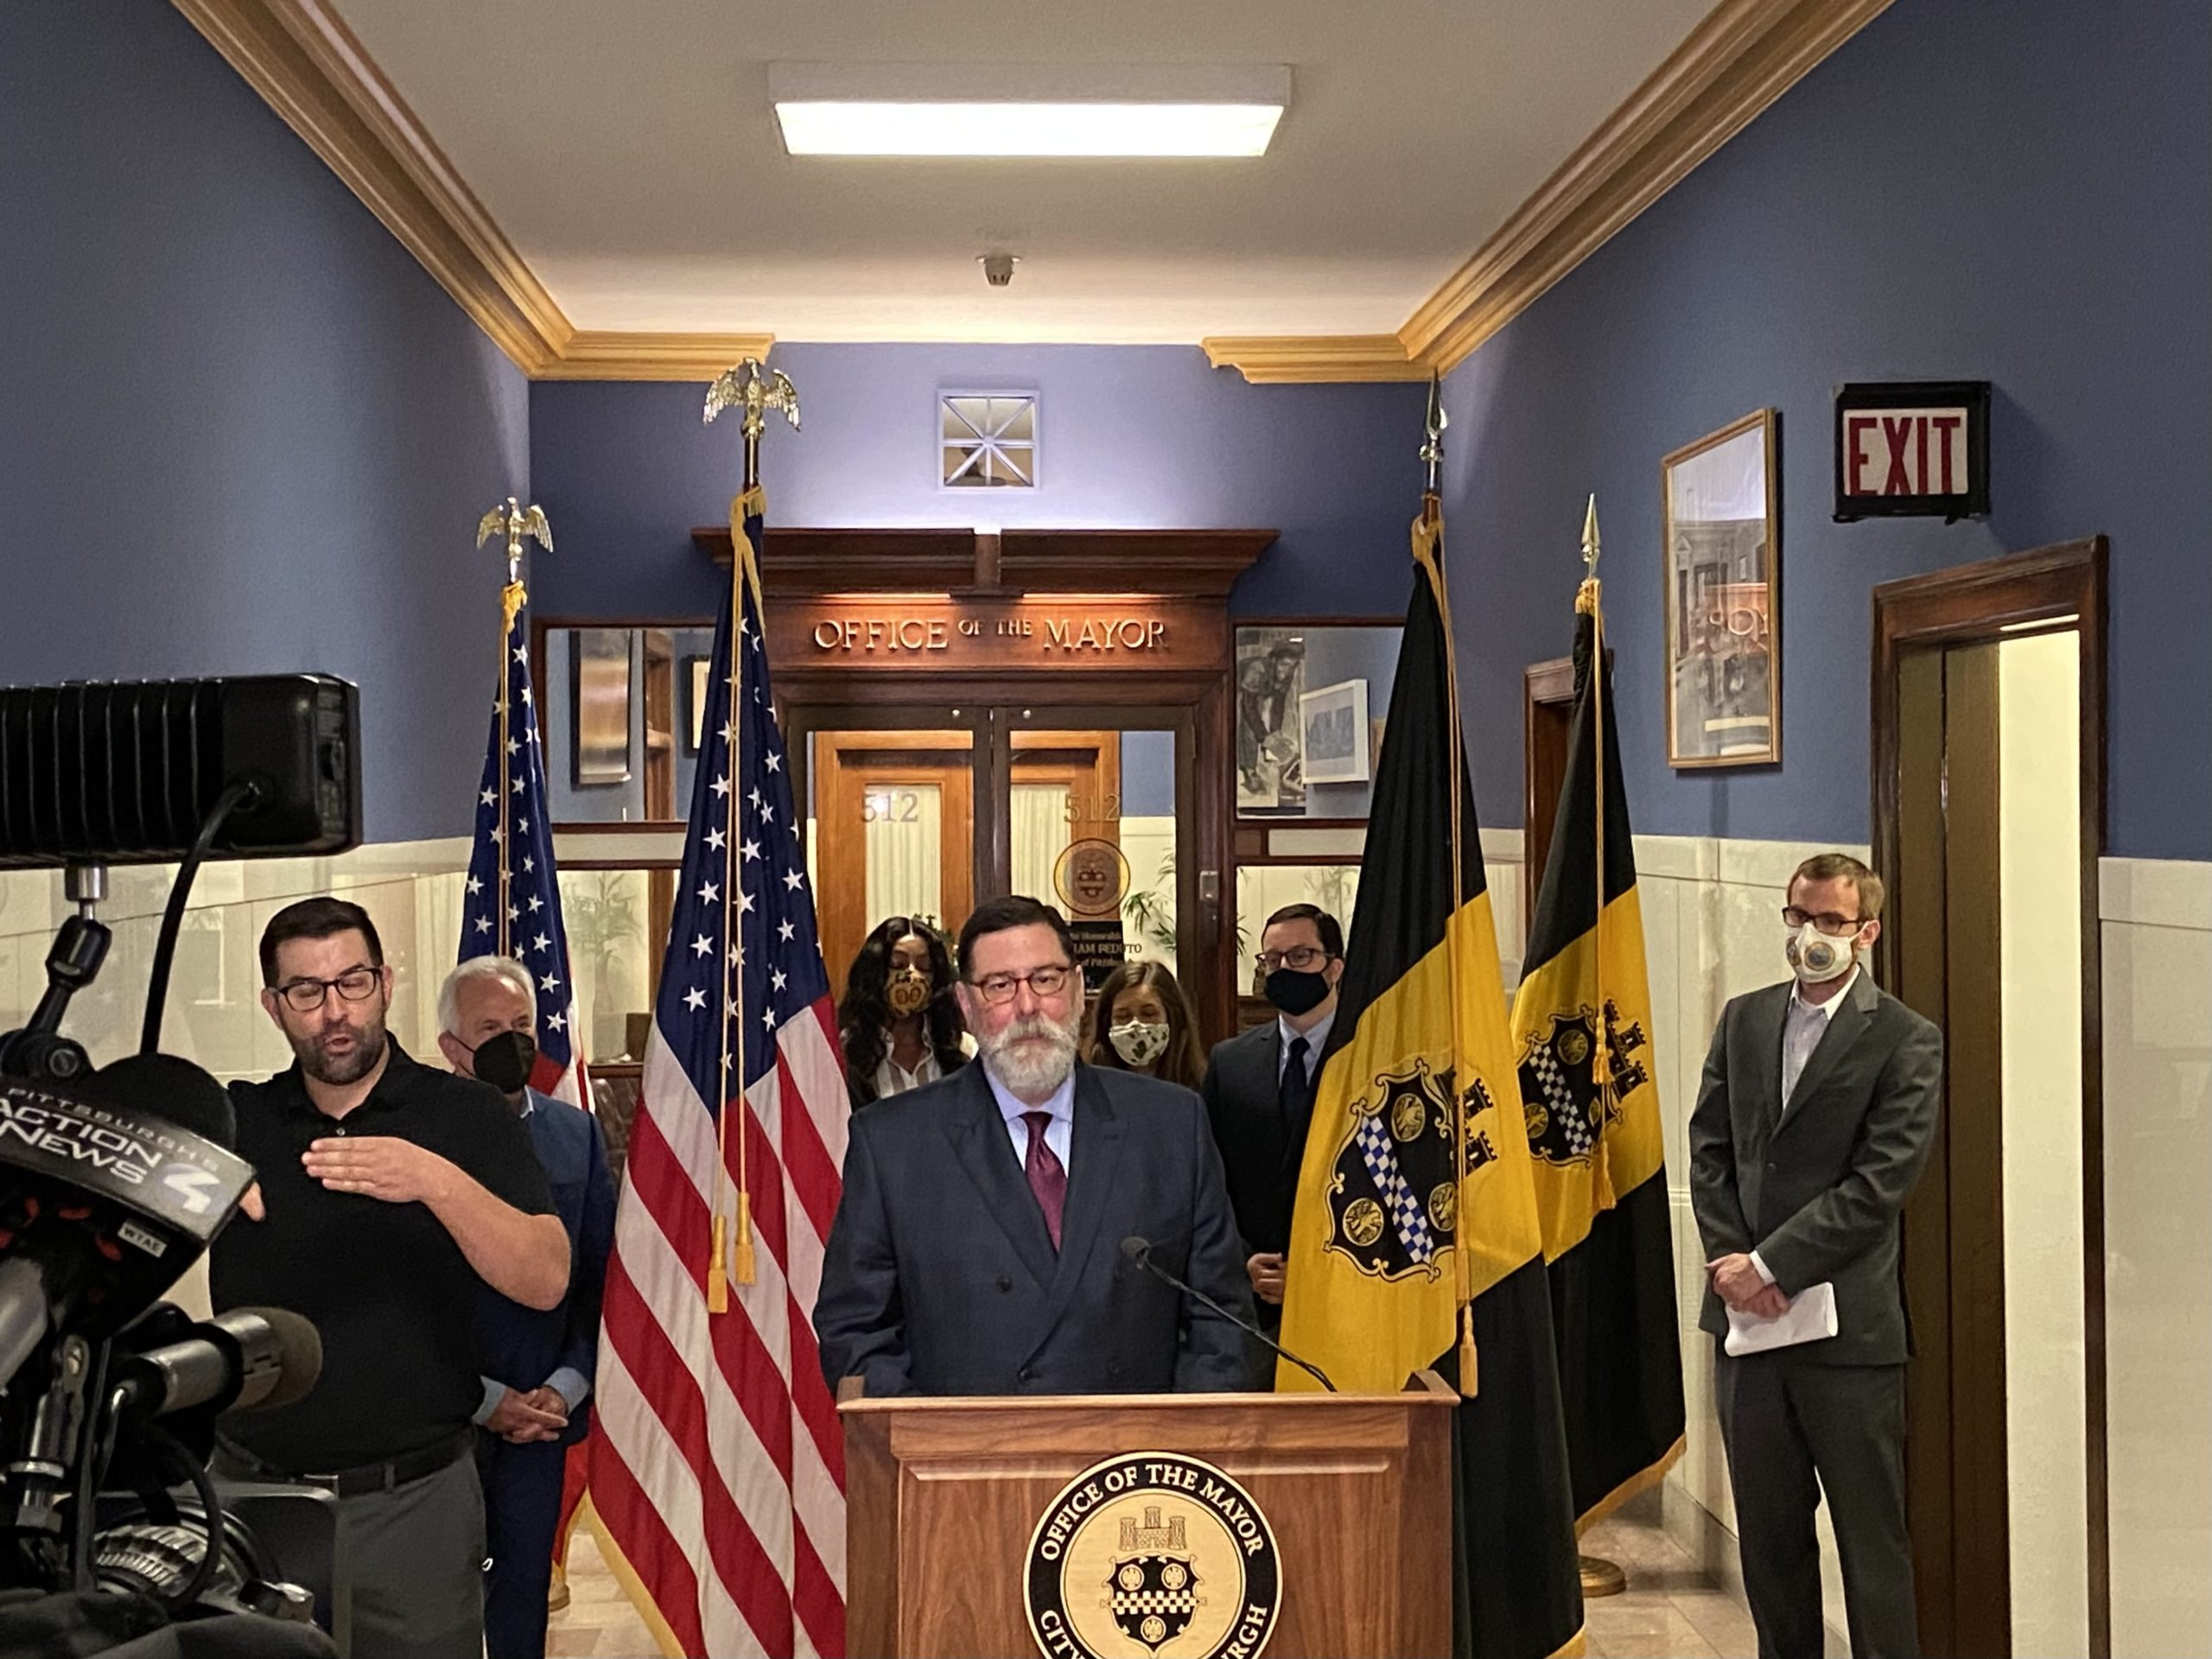 Pittsburgh Mayor Bill Peduto, with Chief of Staff Dan Gilman to his left, announces the OnePGH commitments on April 29, 2021, in the City-County Building. (Photo by Rich Lord/PublicSource)